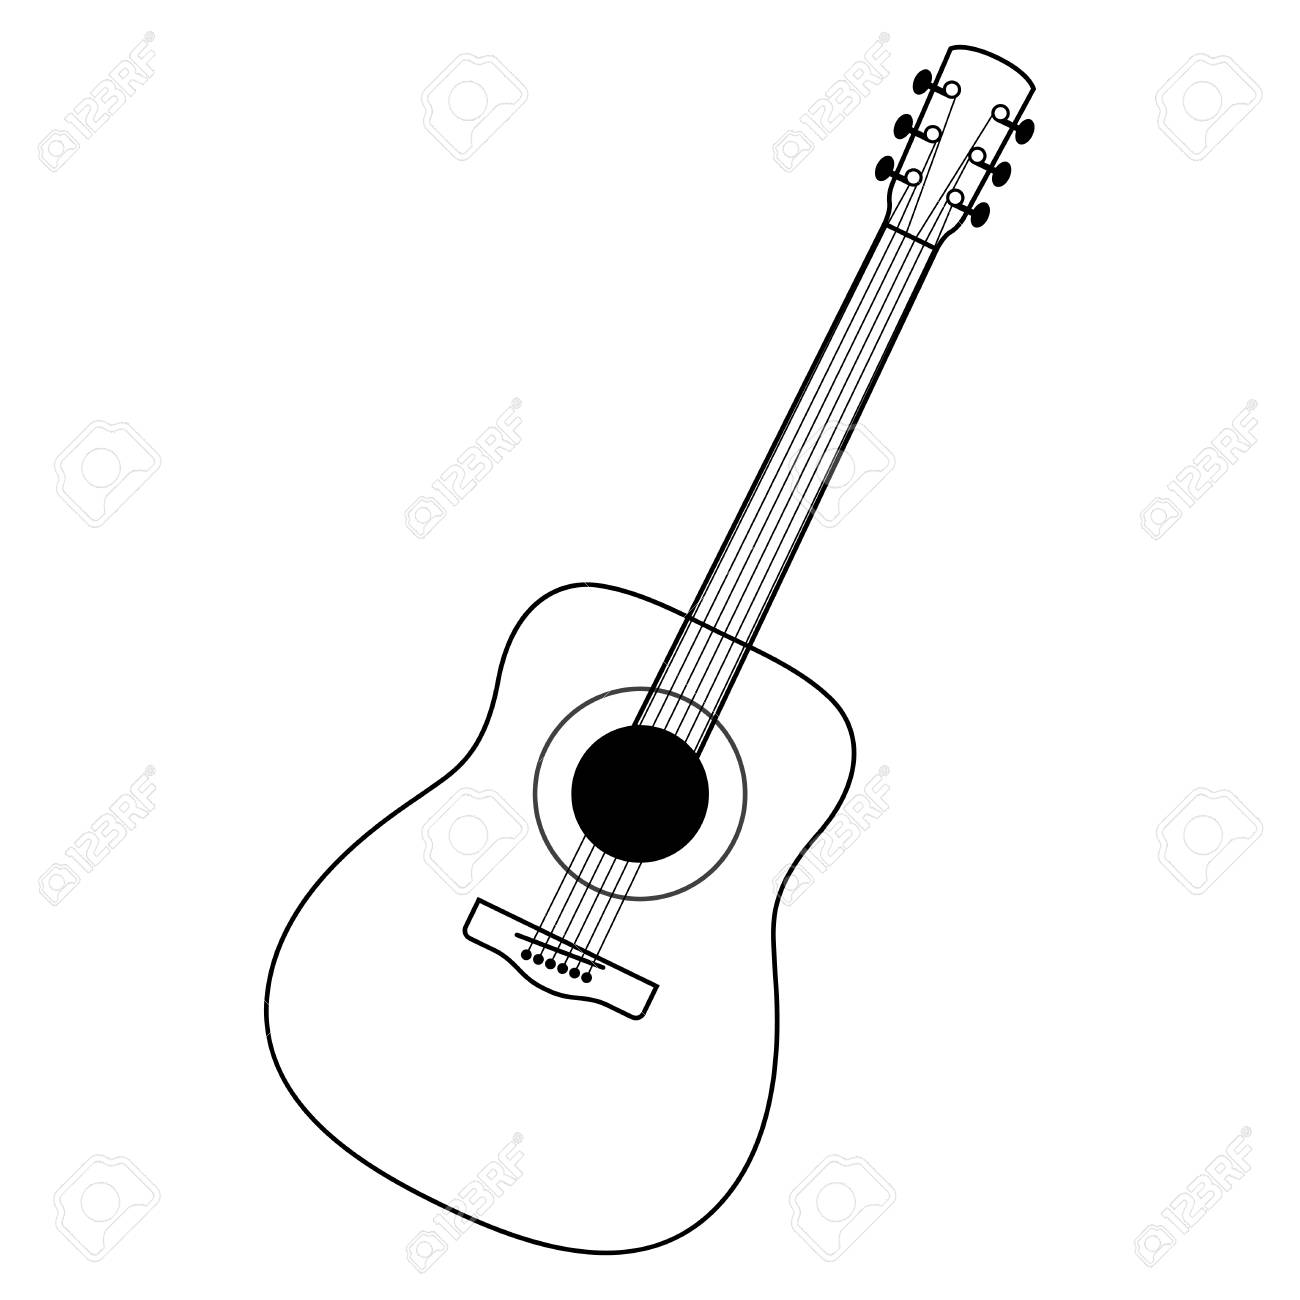 75 Guitar Black And White free clipart.